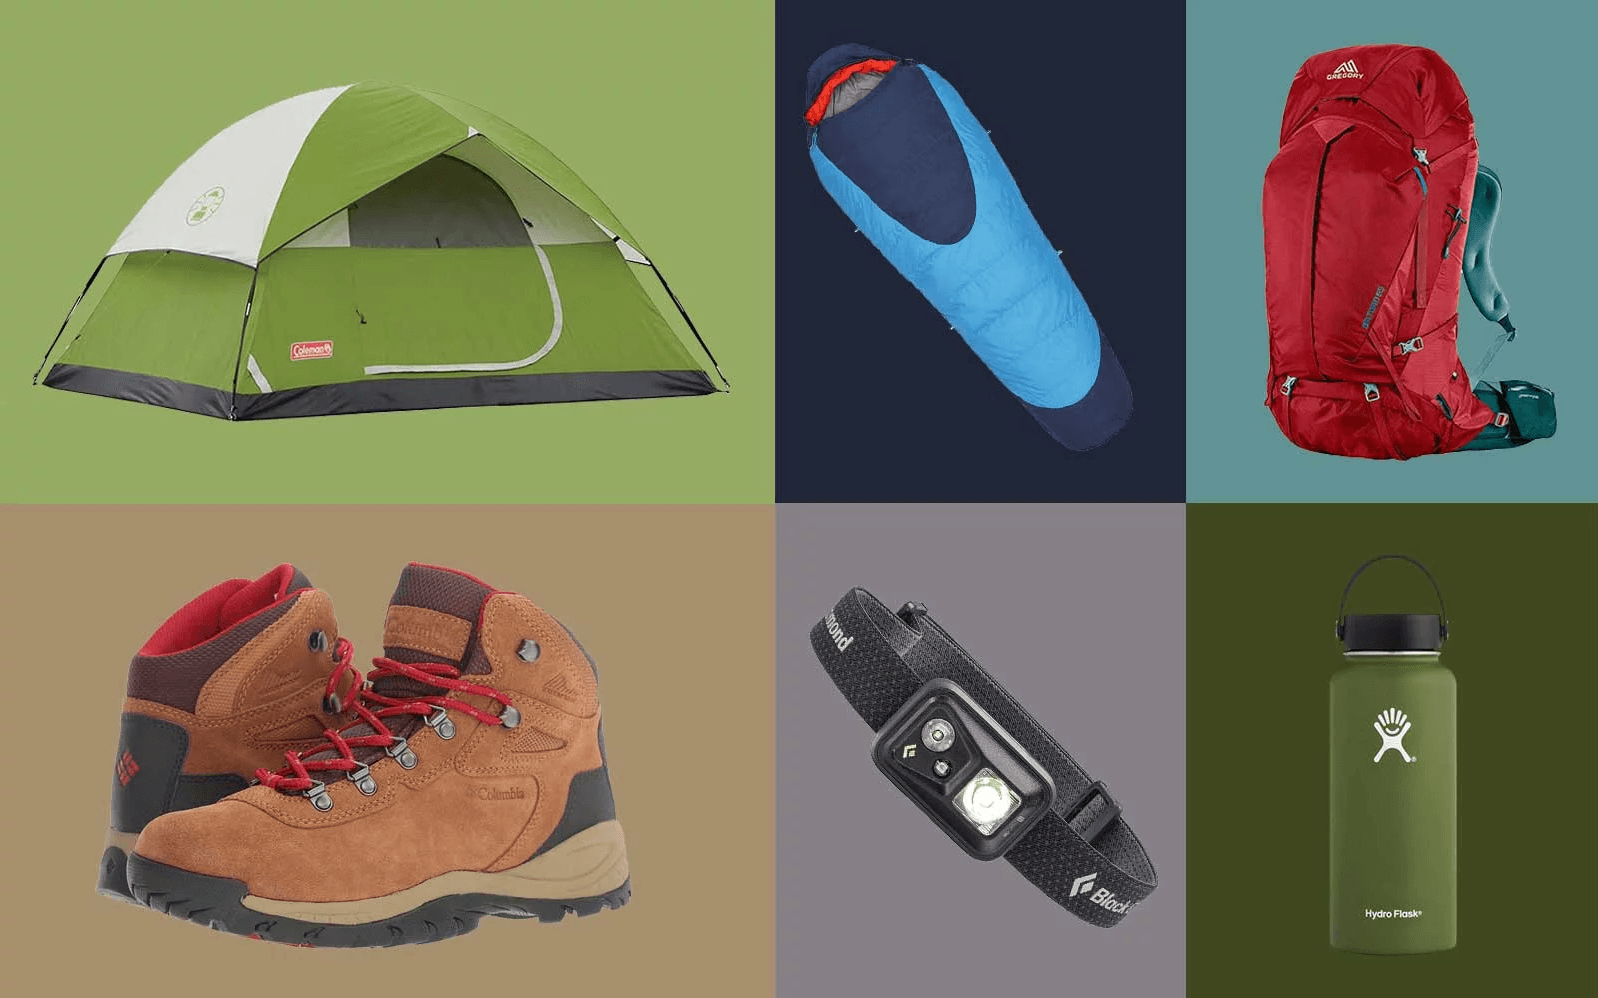 Travel Leisure best camping hiking gear on amazon